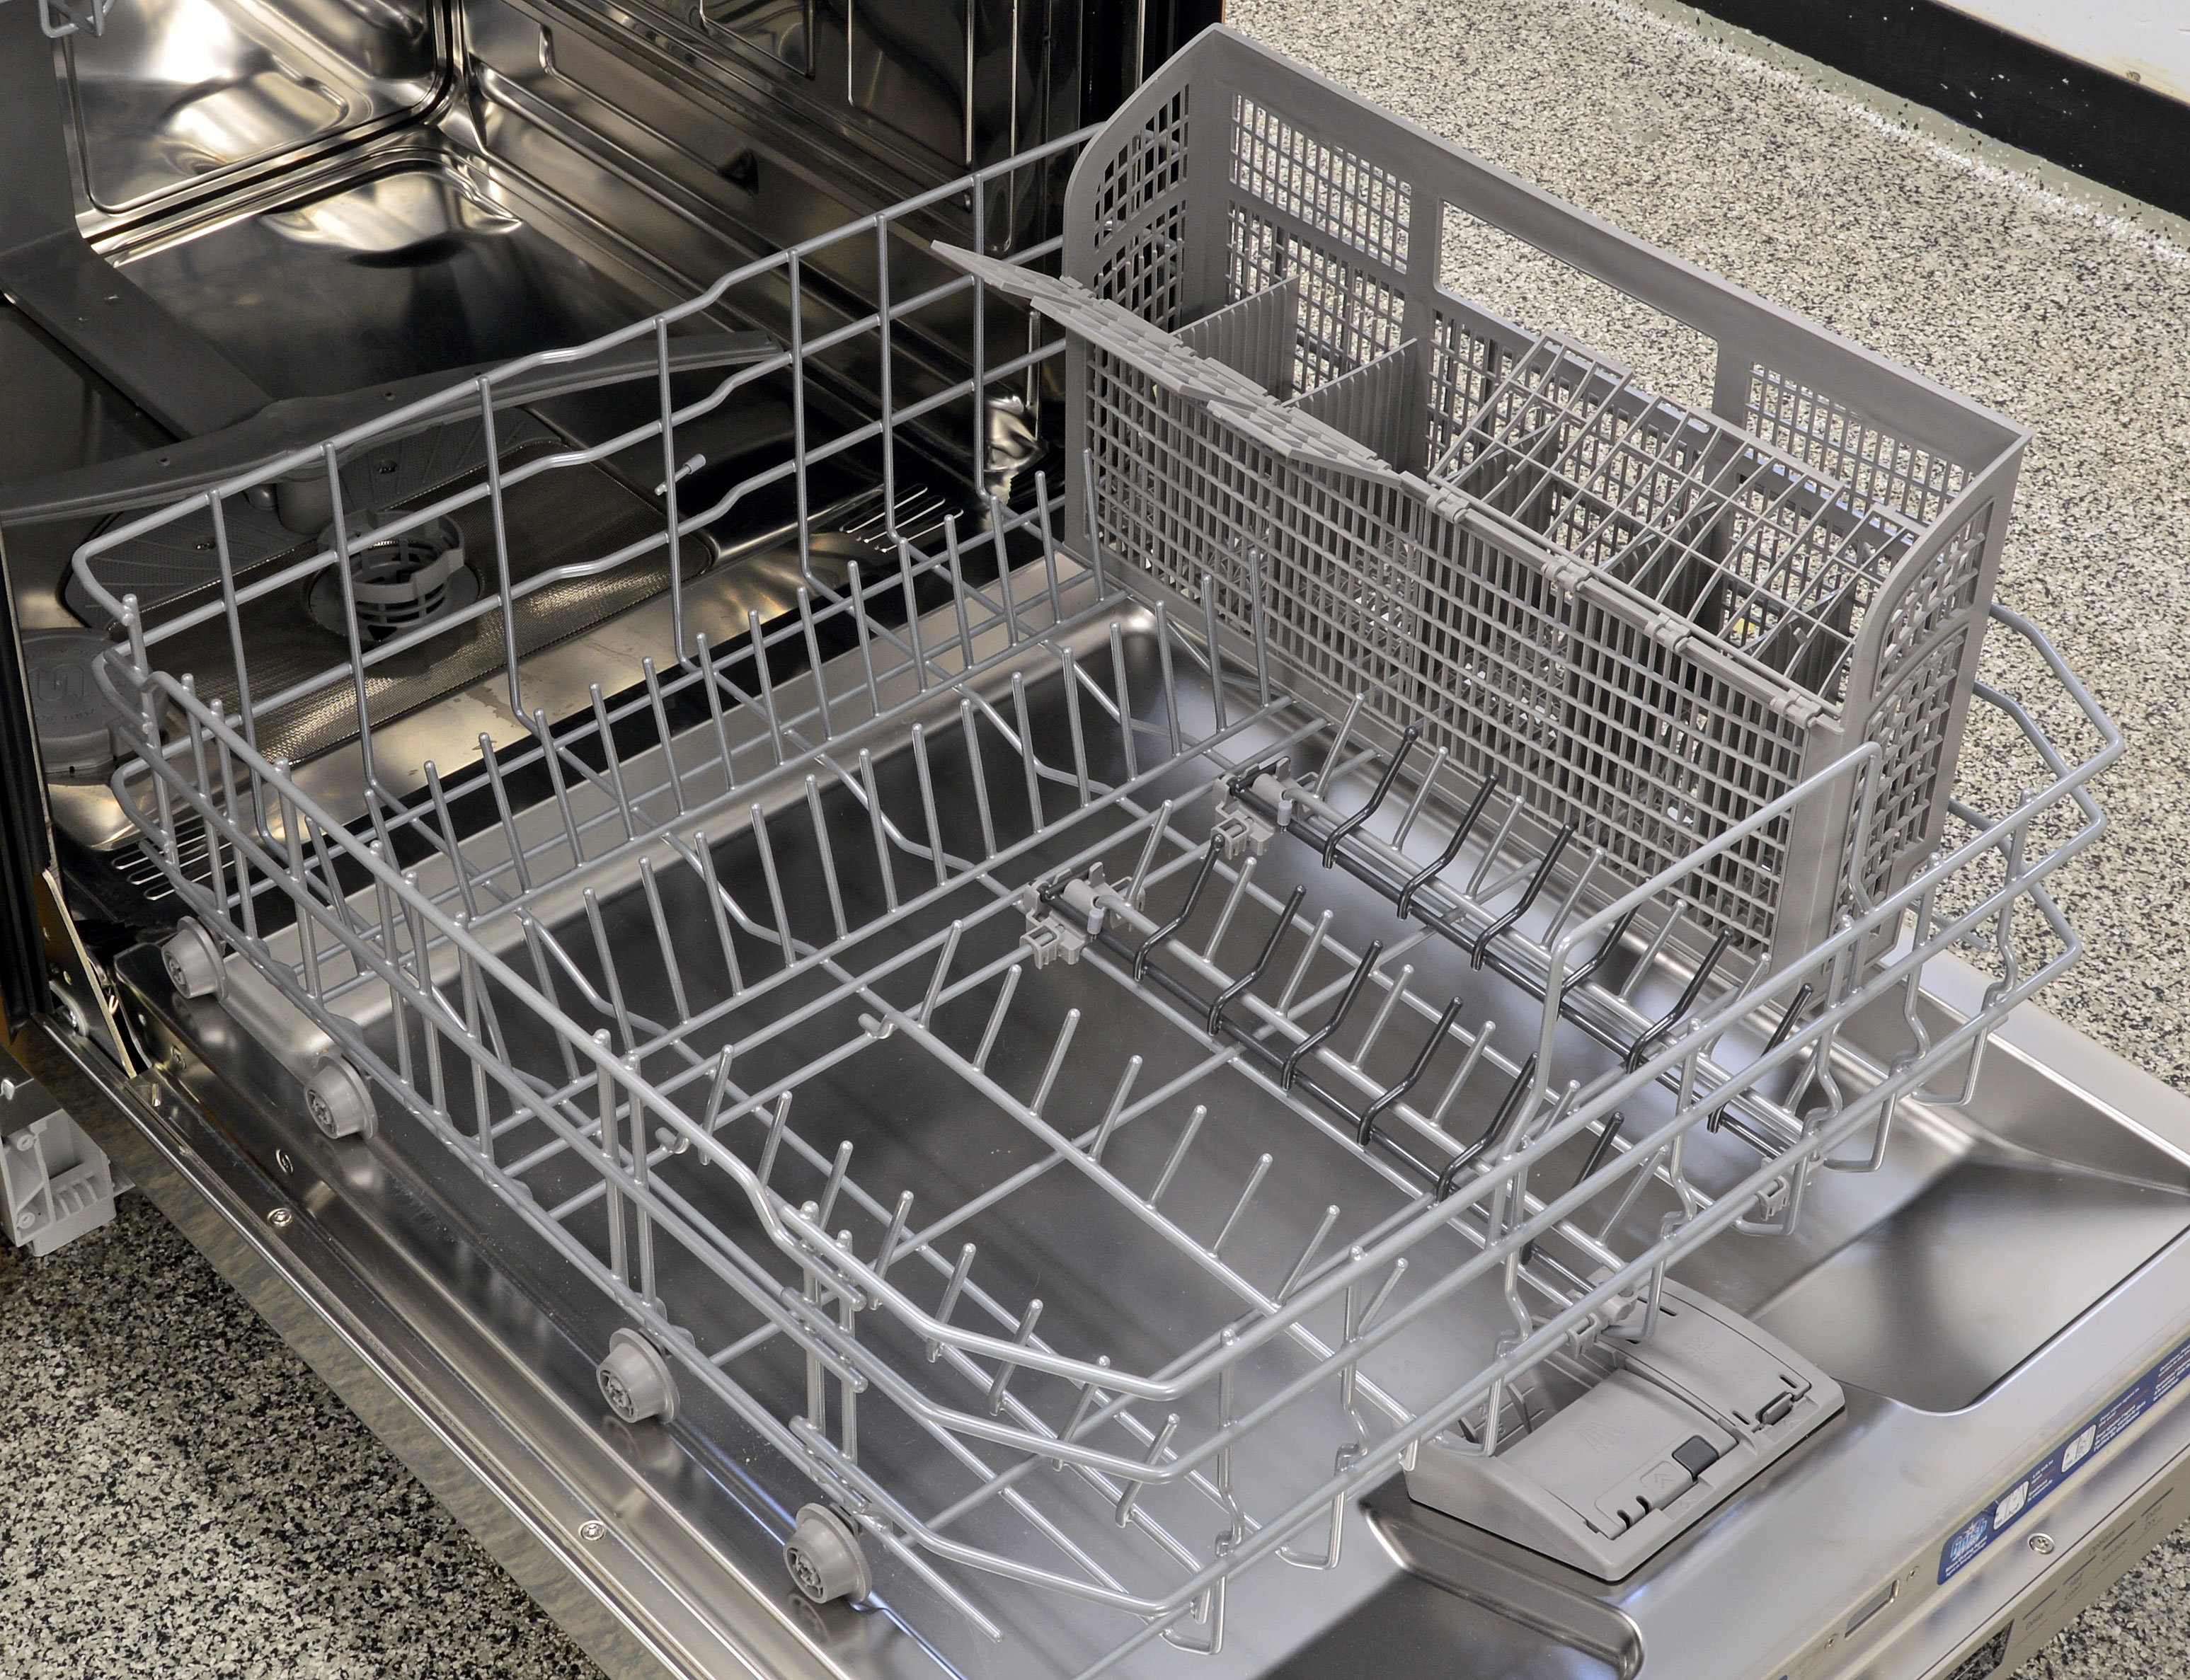 The lower rack slides in and out quite easily, and it also comes with two half rows of grey folding tines. The full-depth cutlery basket is one large unit piece.